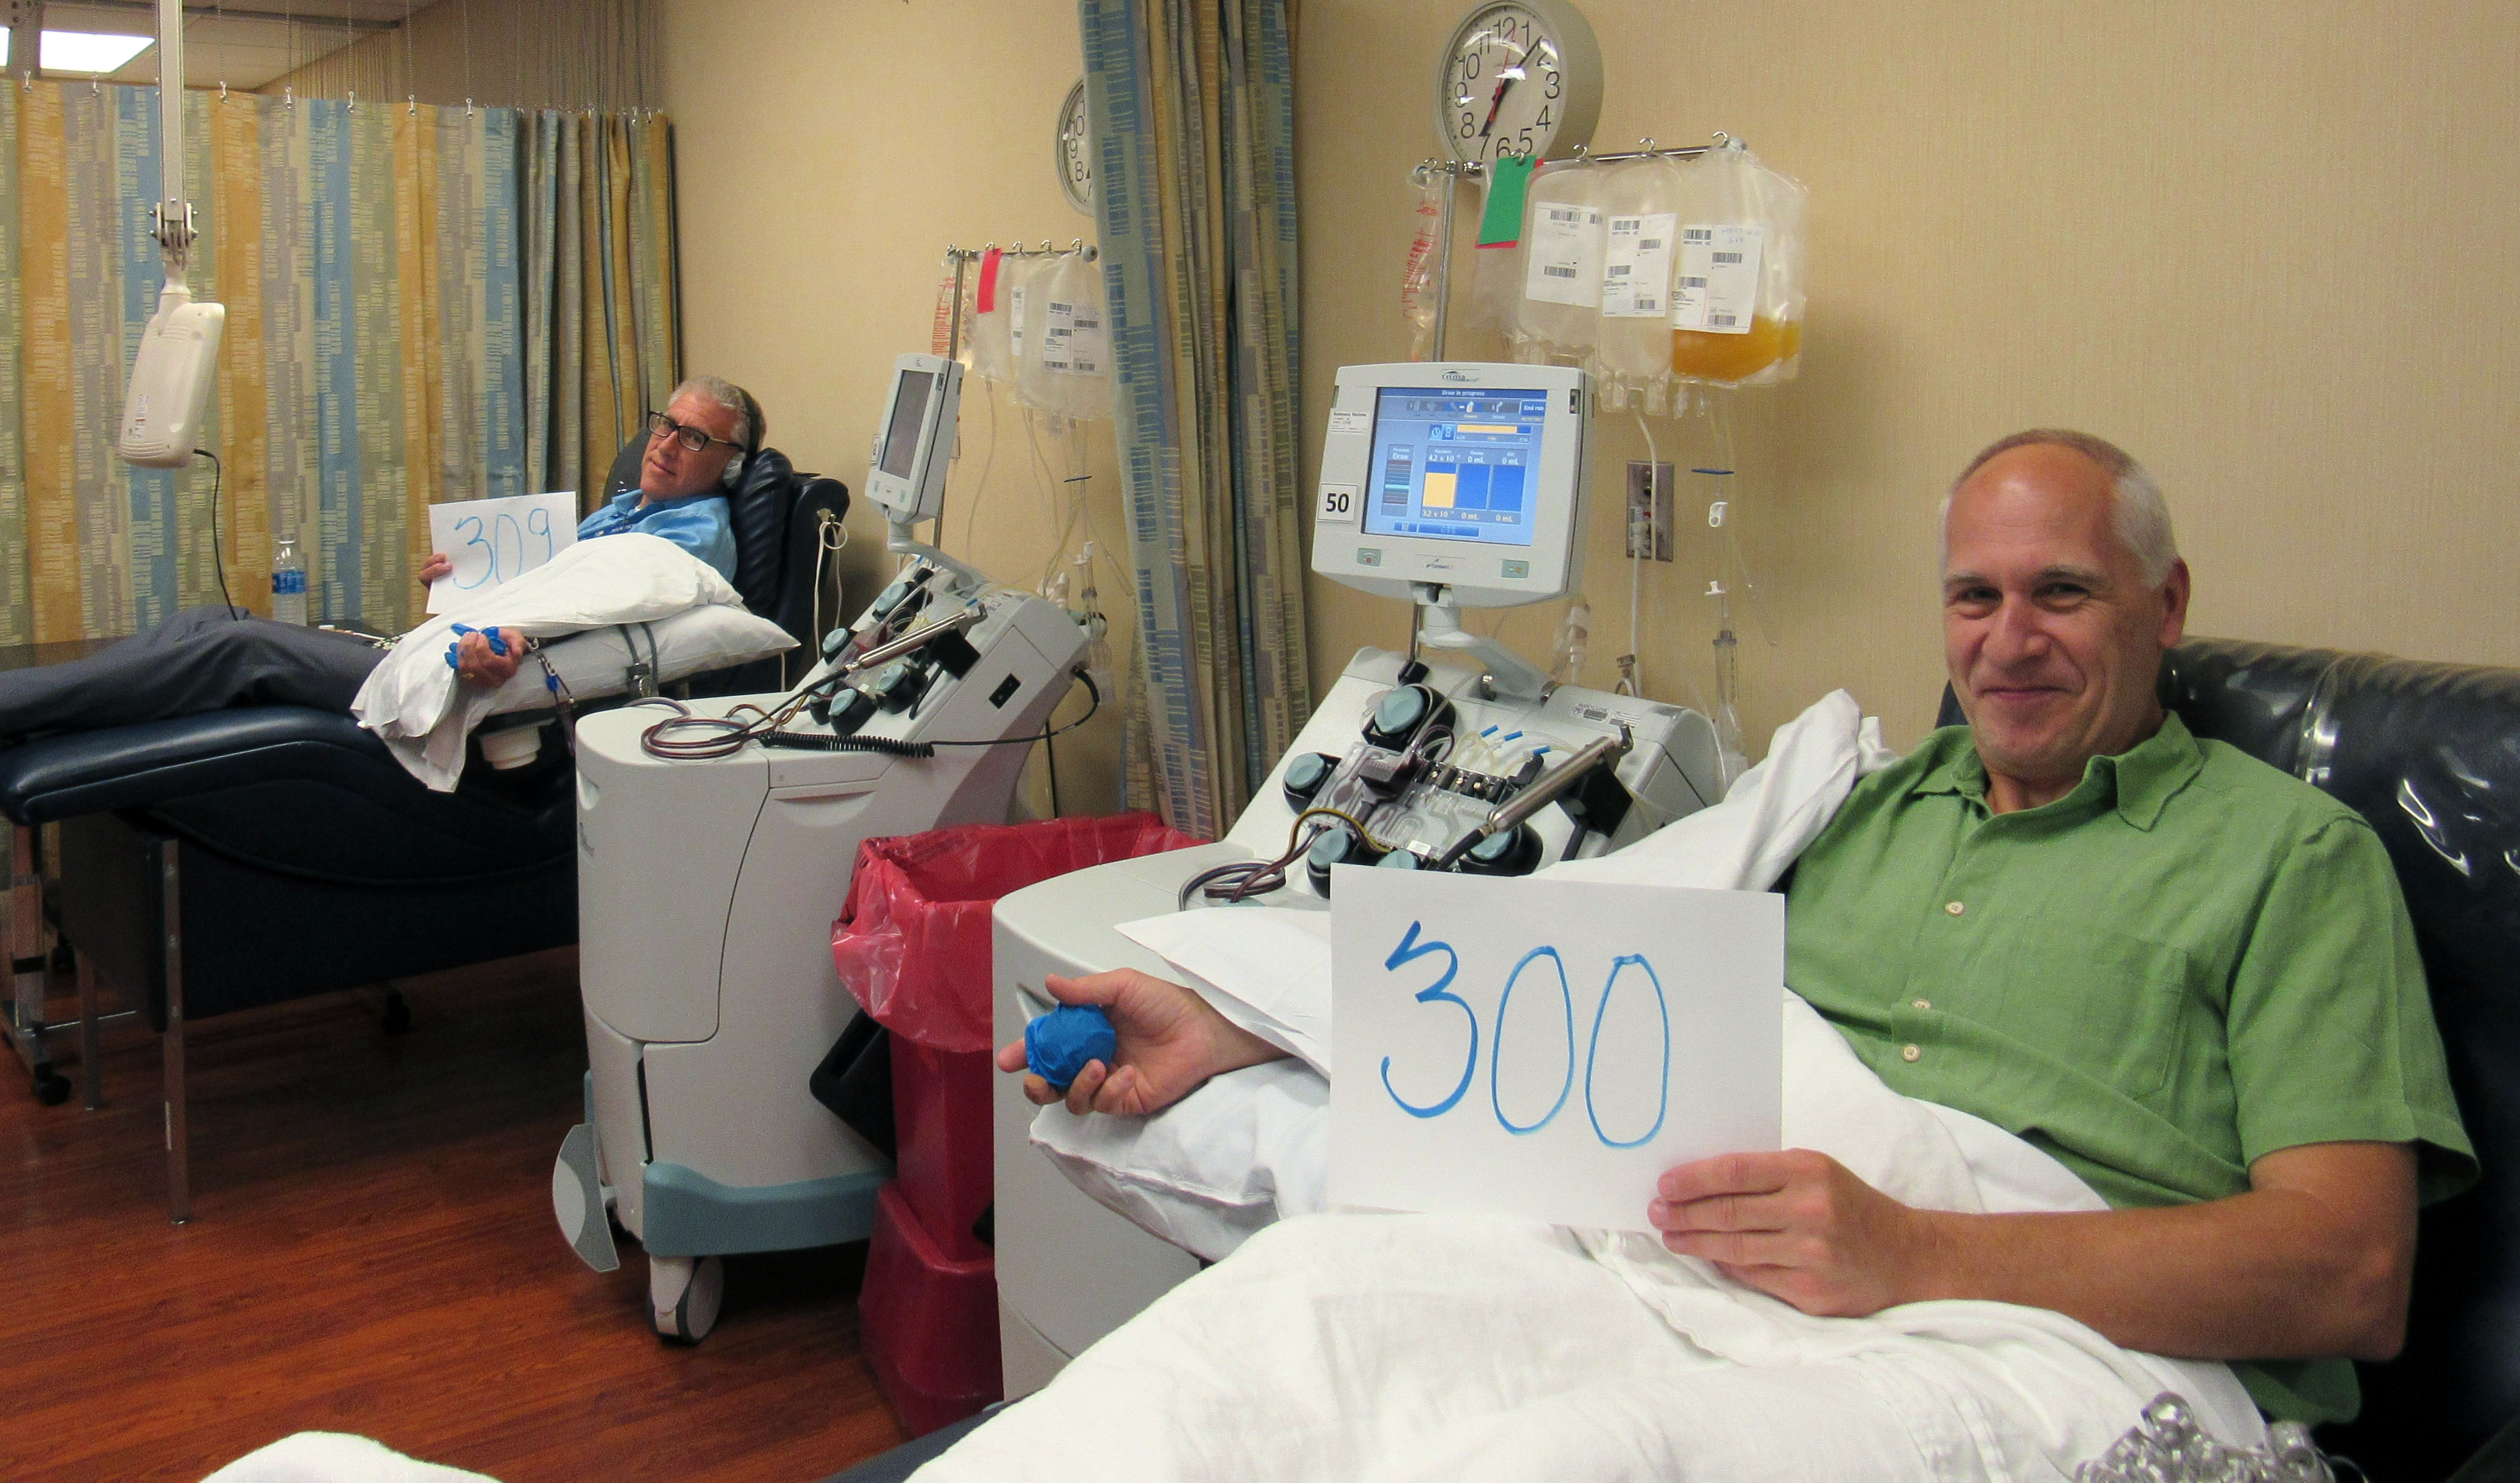 SIZED Dave Johnson's 300th Donation 006